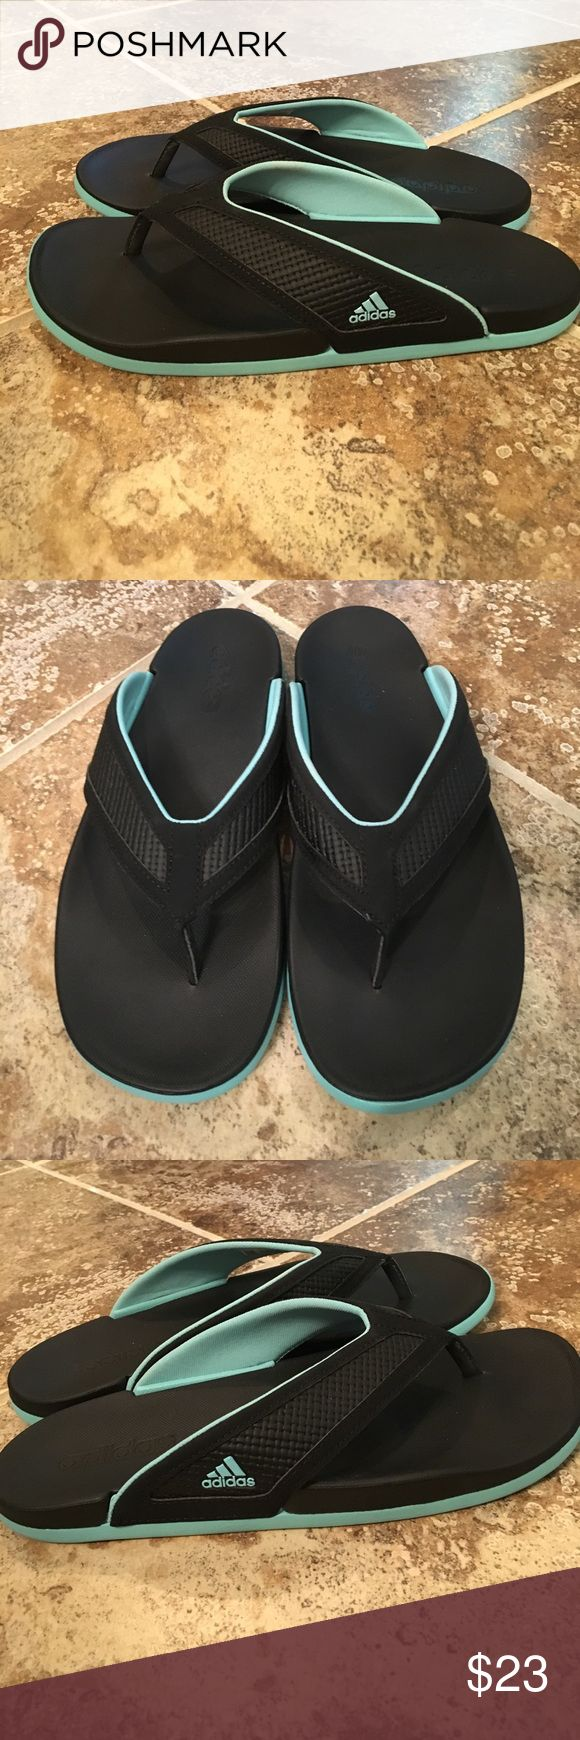 Adidas Adilette Thong Flip Flop Sandals, Size 7 Adidas Adilette Thong Flip Flop Sandals, Size 7. Features Adidas Cloud Foam footbed (similar to memory foam). Black and aqua blue. Worn once and in excellent condition. Feel free to make an offer! adidas Shoes Sandals